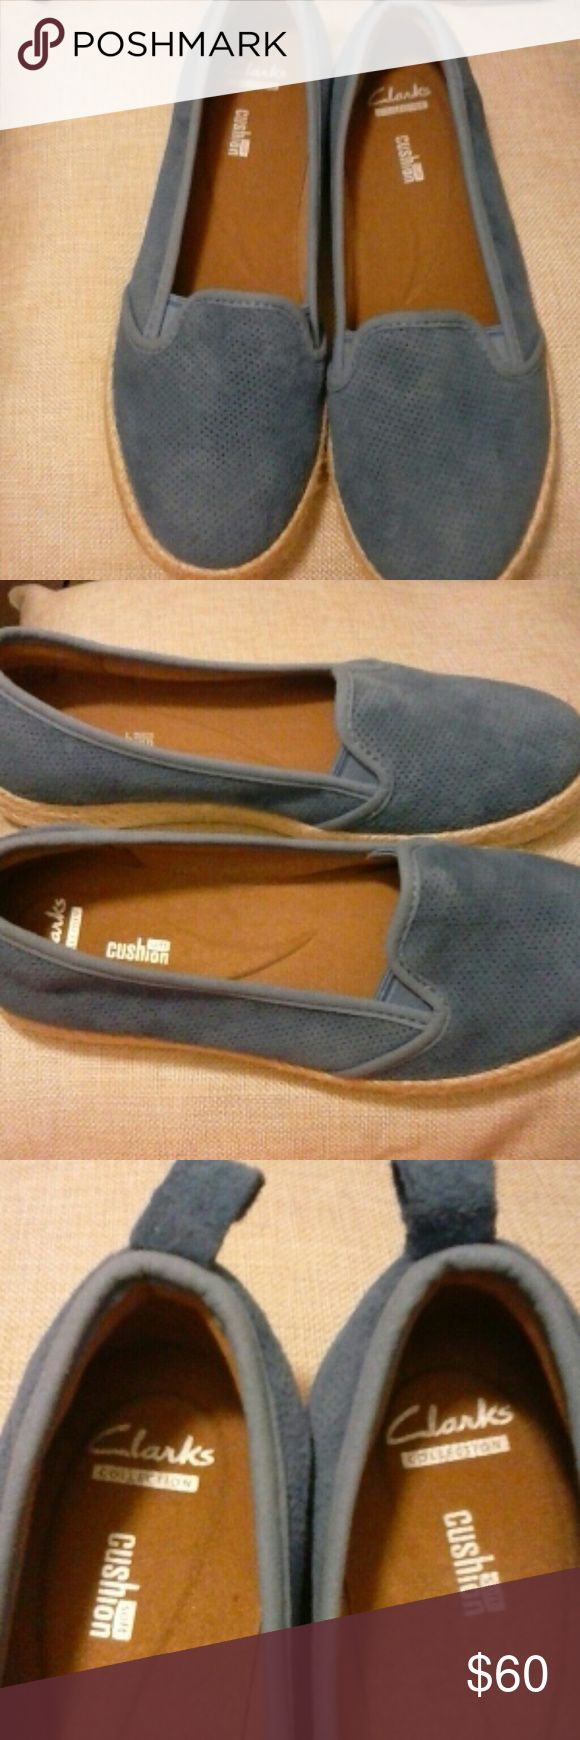 New Clark collection cushion soft flat shoes Suede /Rubber sole Clark Shoes Flats & Loafers